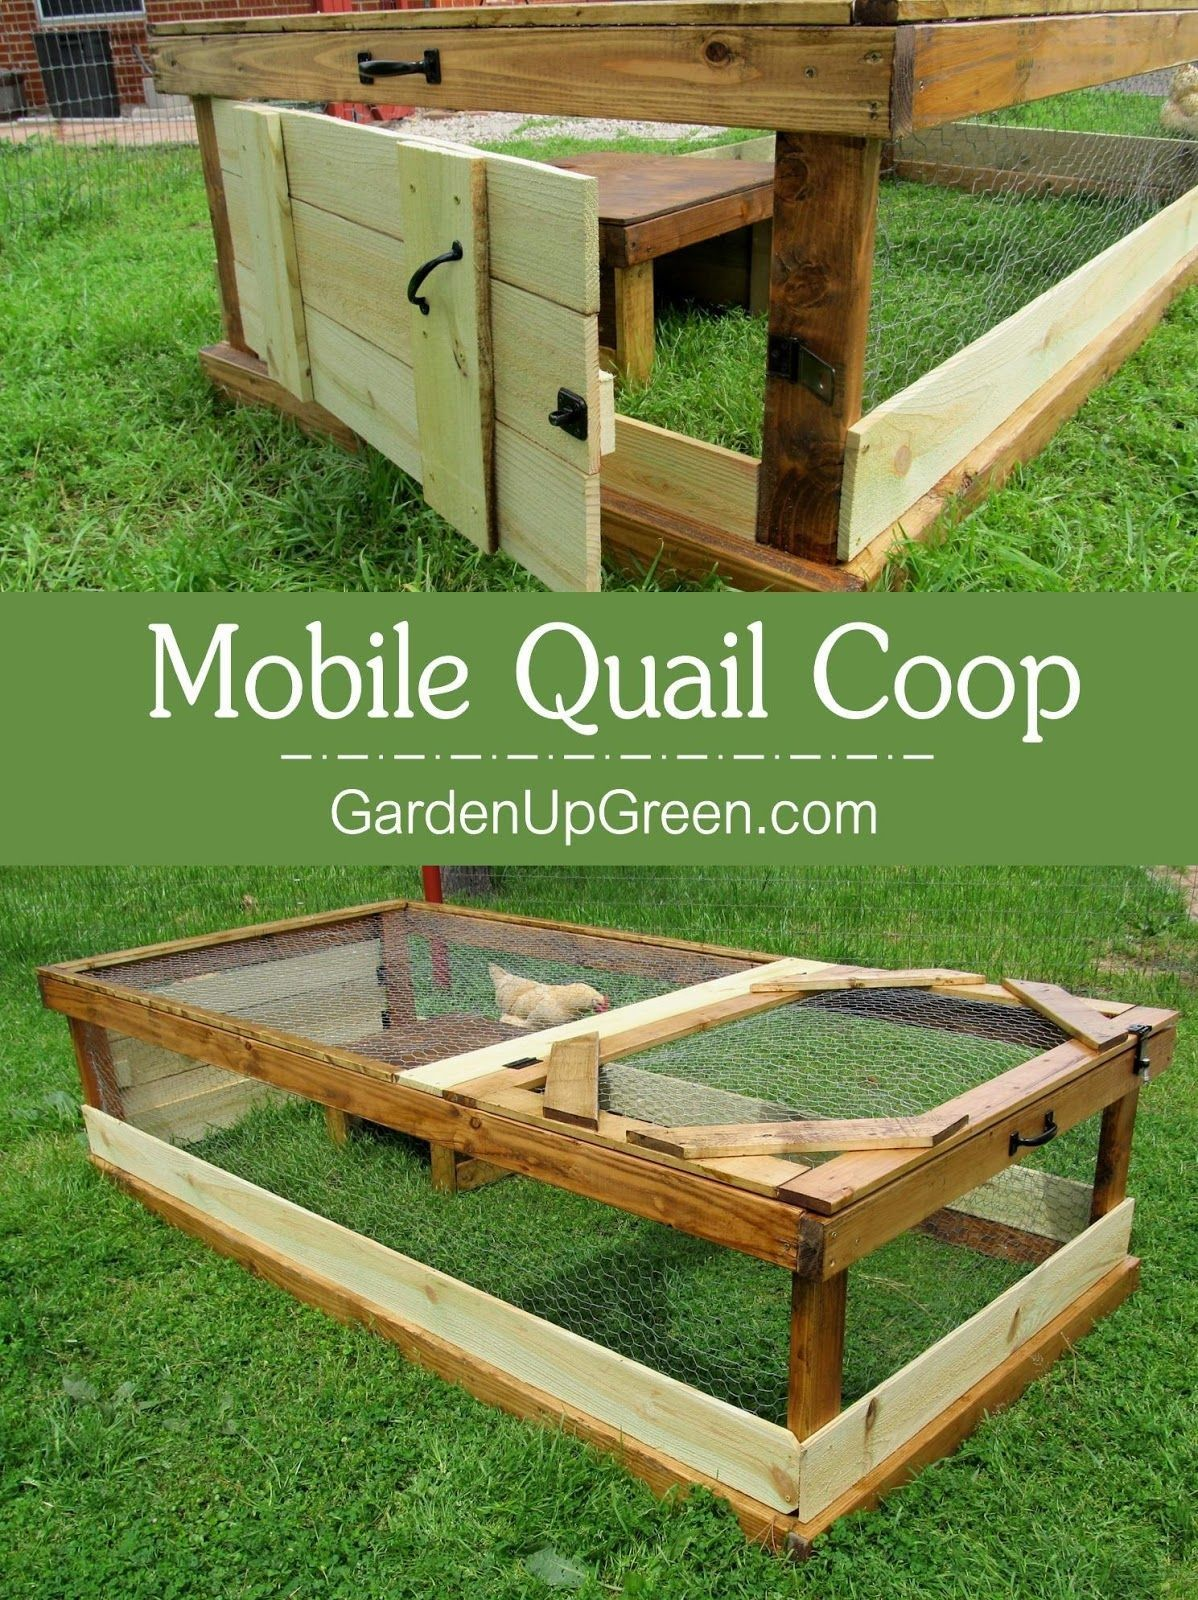 Thinking About Raising Quail In Your Backyard This Mobile Quail Coop Is A Great Option For Raising Quail In A Natur Quail Coop Raising Quail Chickens Backyard Diy backyard quail coop